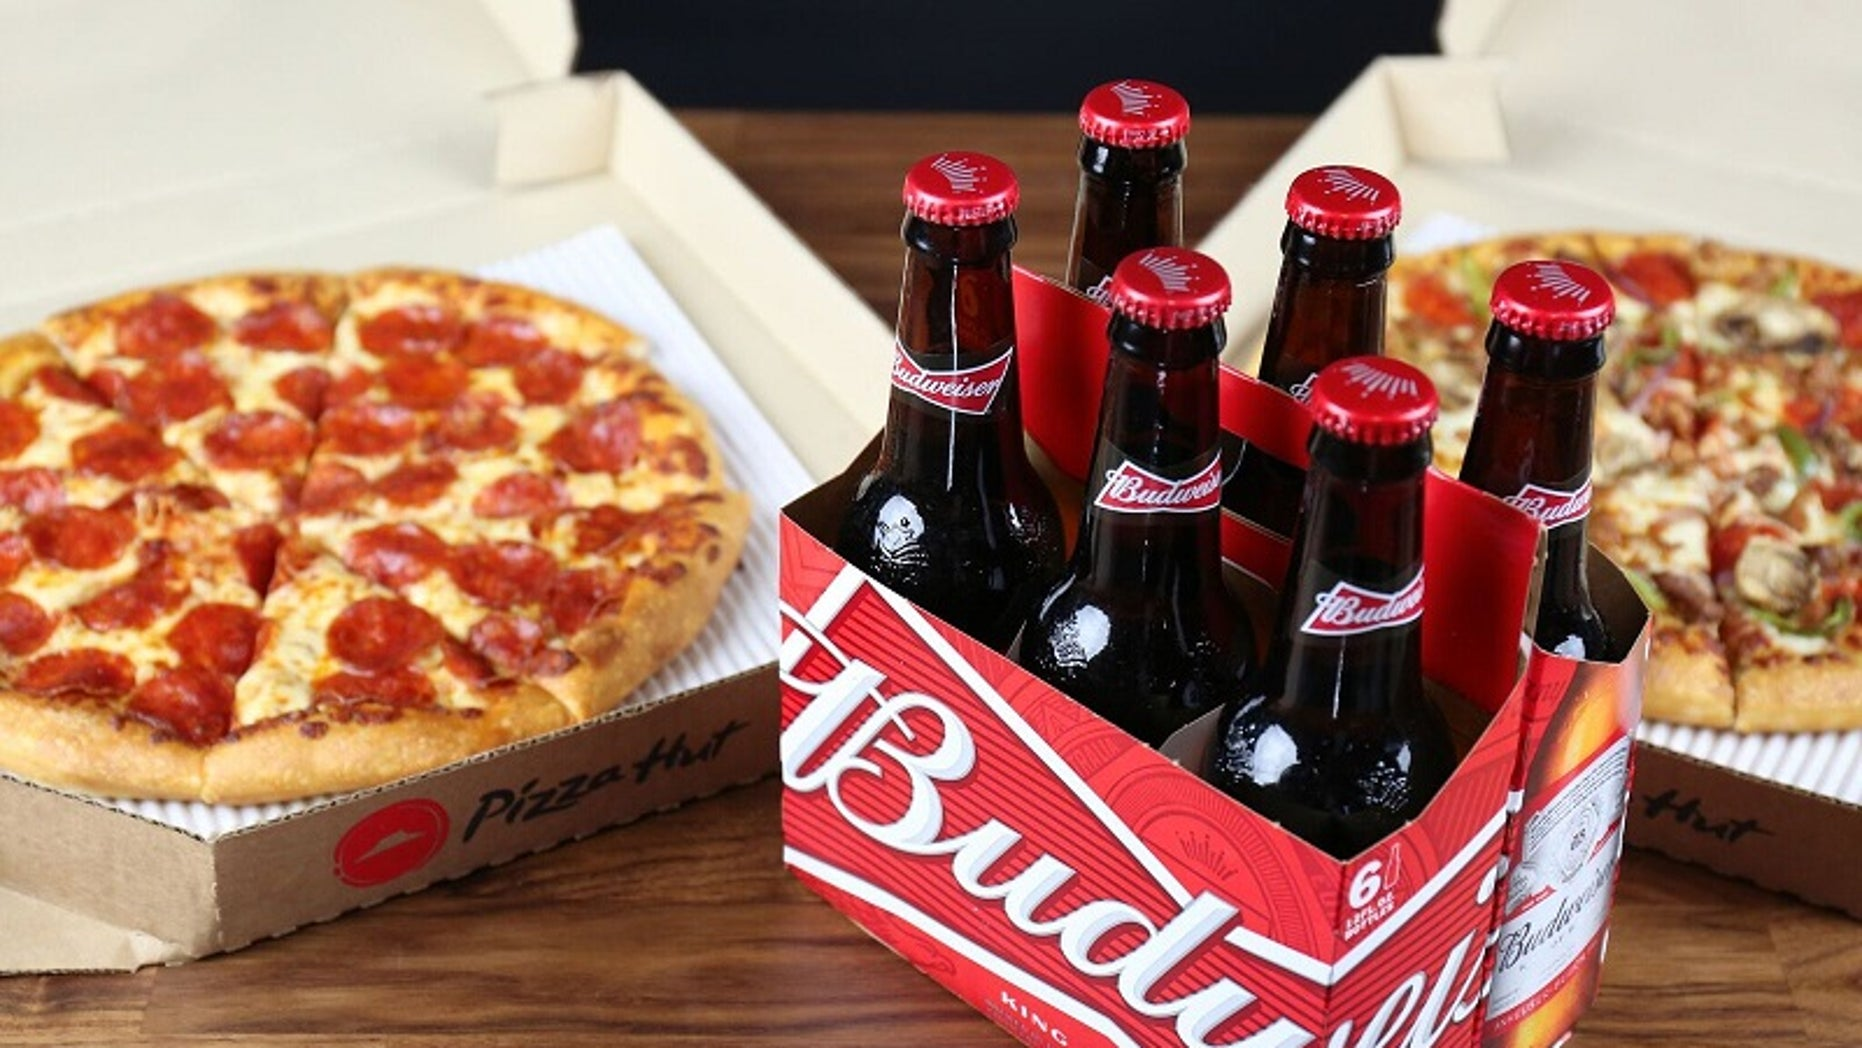 Pizza Hut announced it will be delivering beer and wine to thirsty customers.